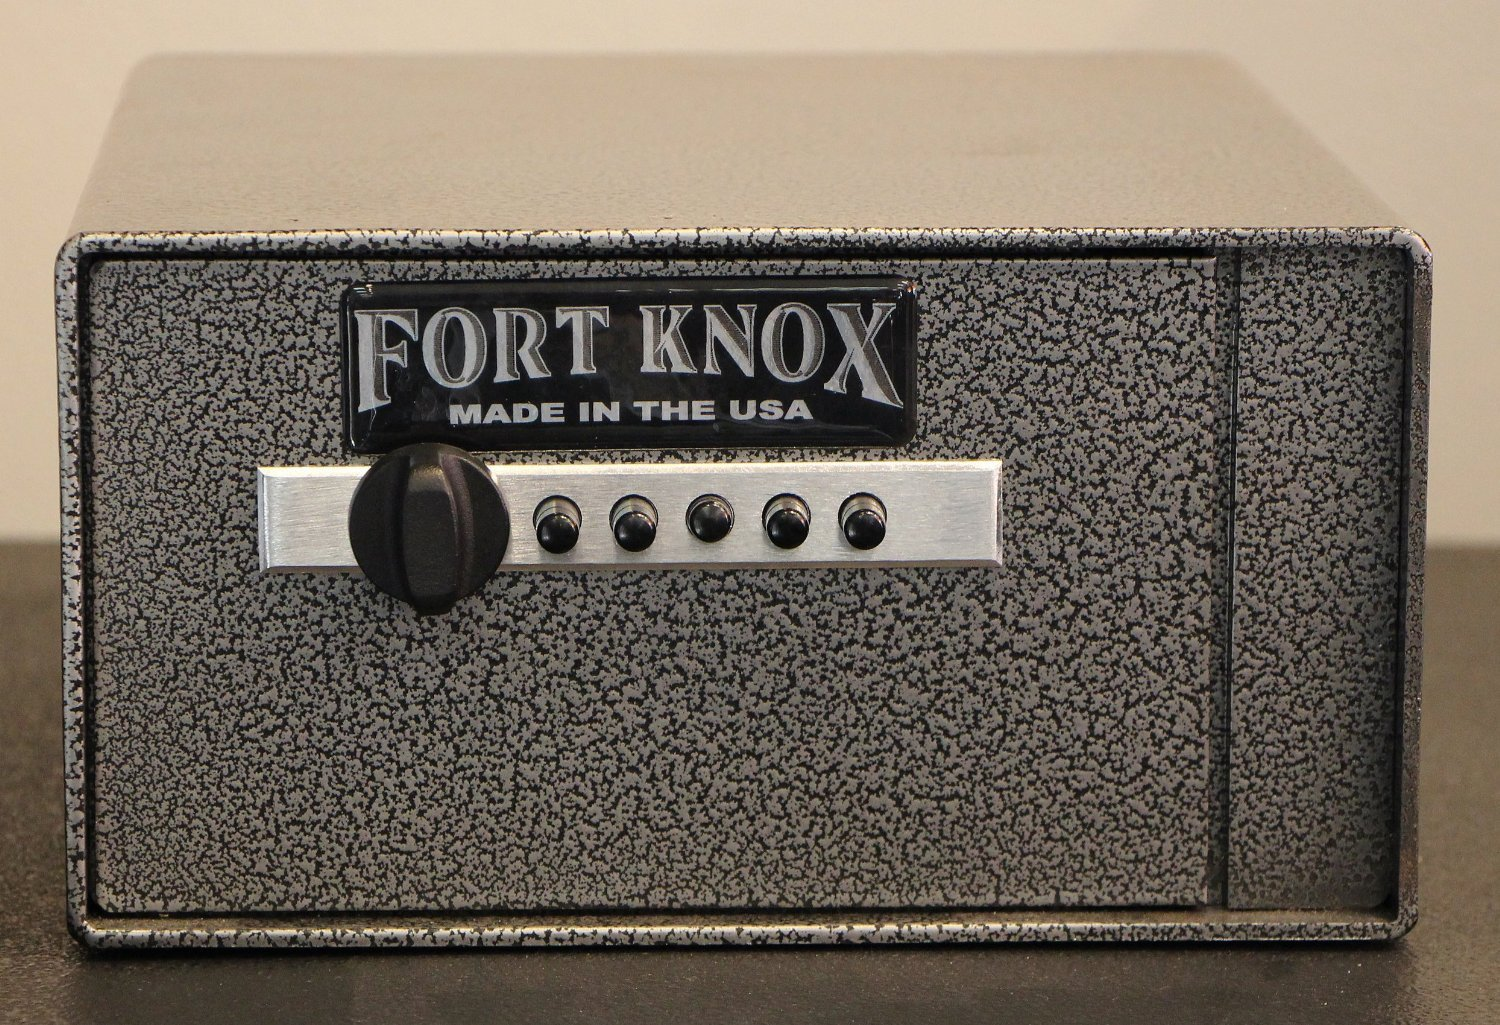 Fort Knox Personal Pistol Safe Review